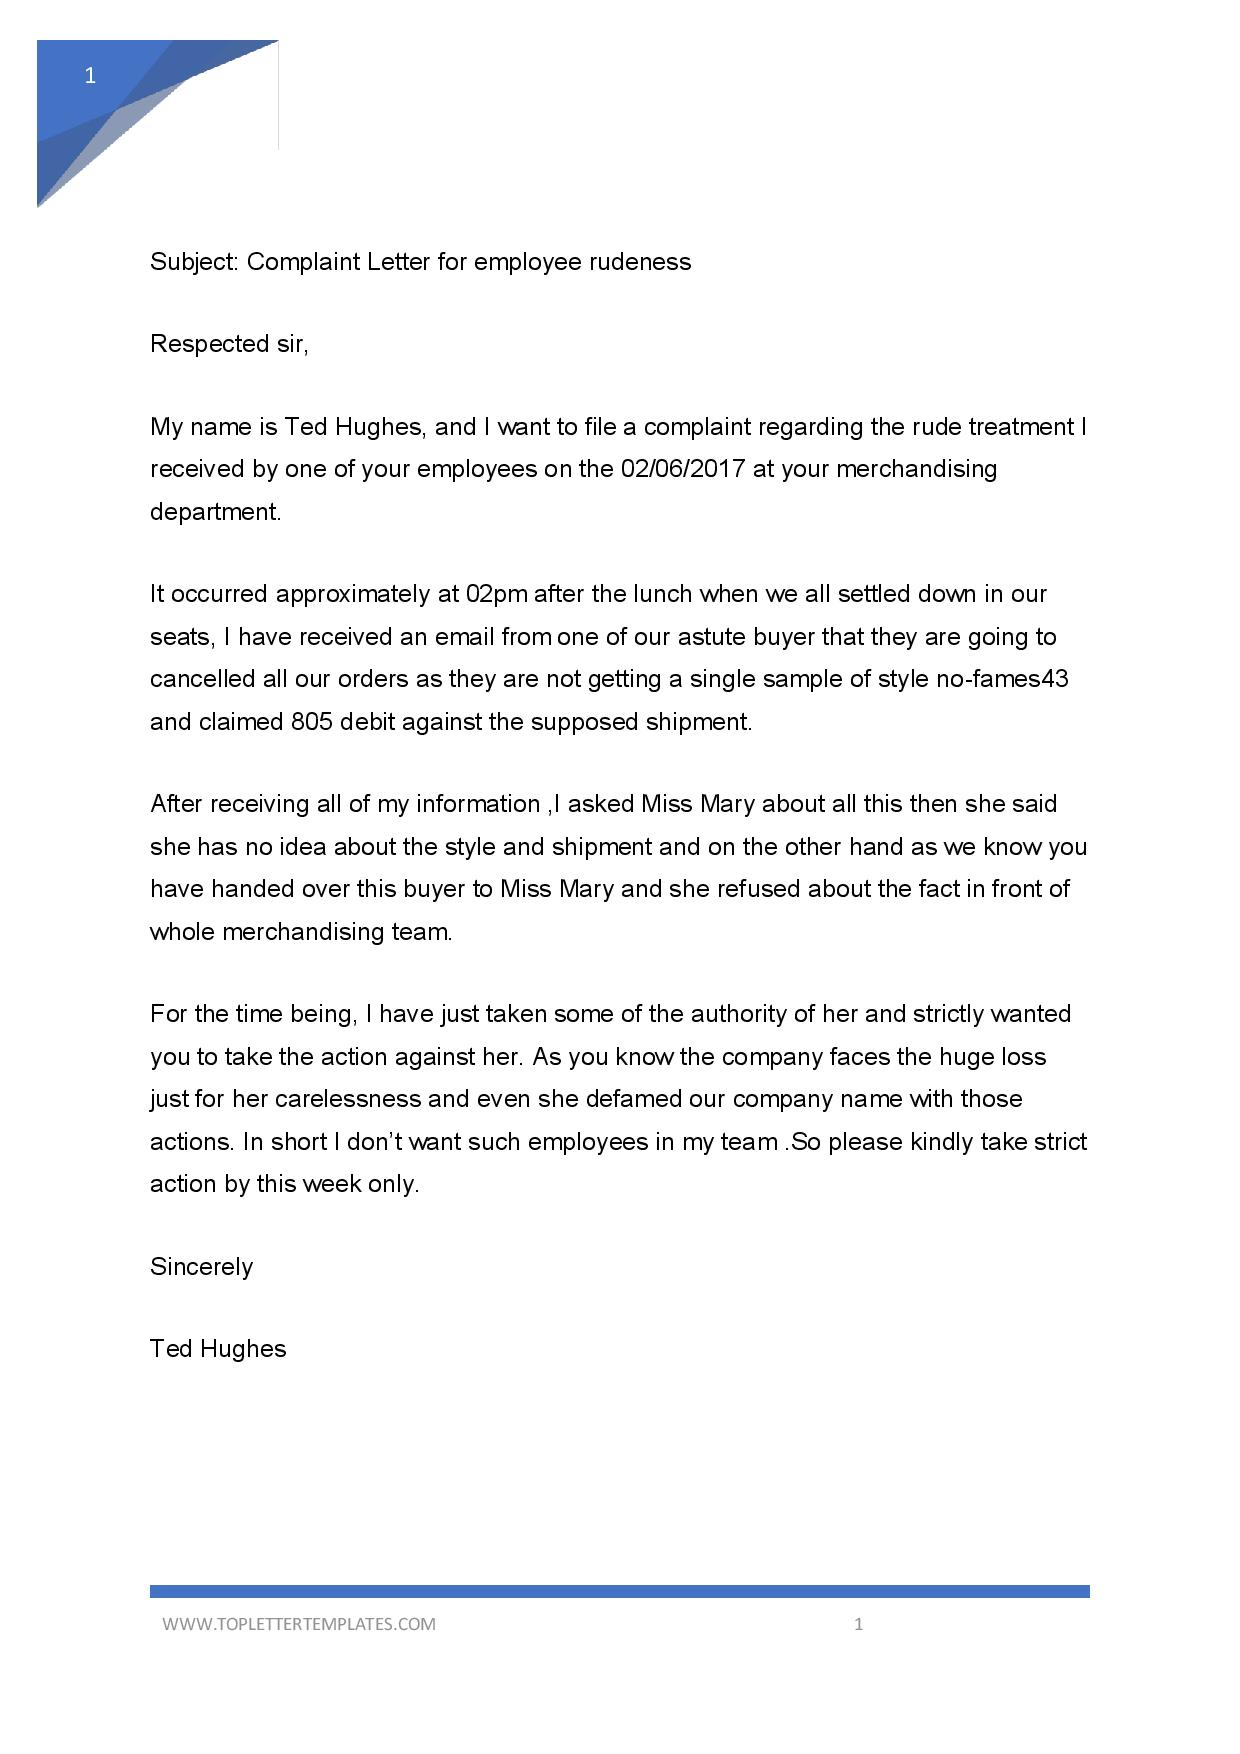 Complaint Letter To Boss About Coworker Sample from toplettertemplates.com